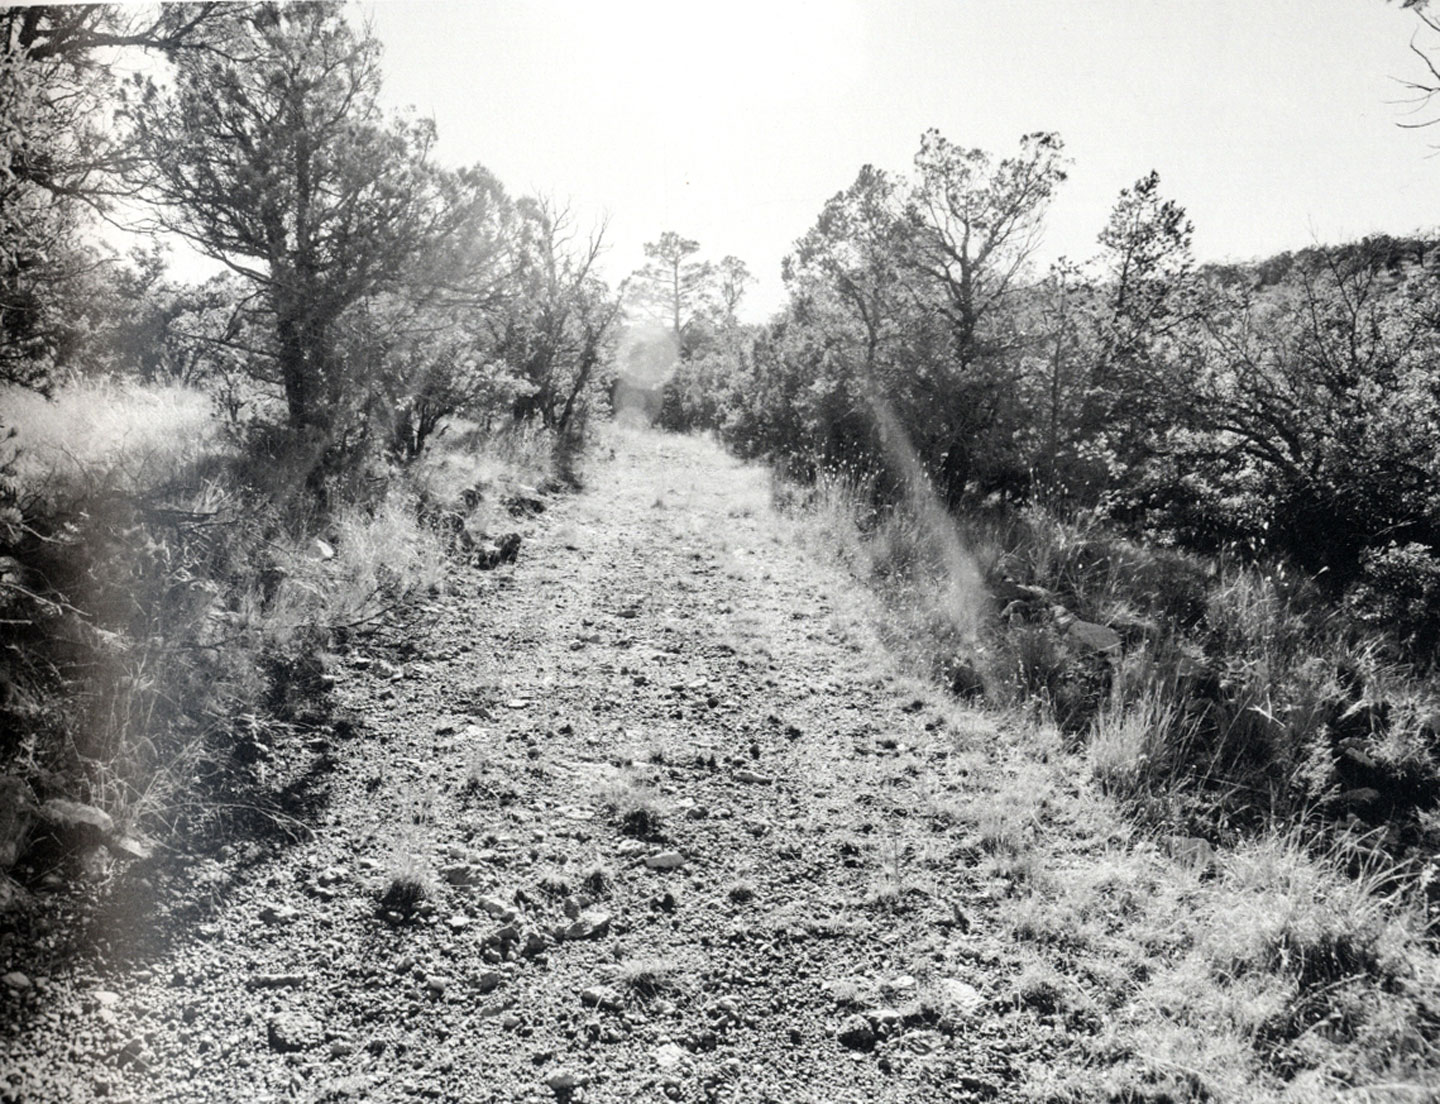 Christopher Wool: Road, Limited Edition [SIGNED]